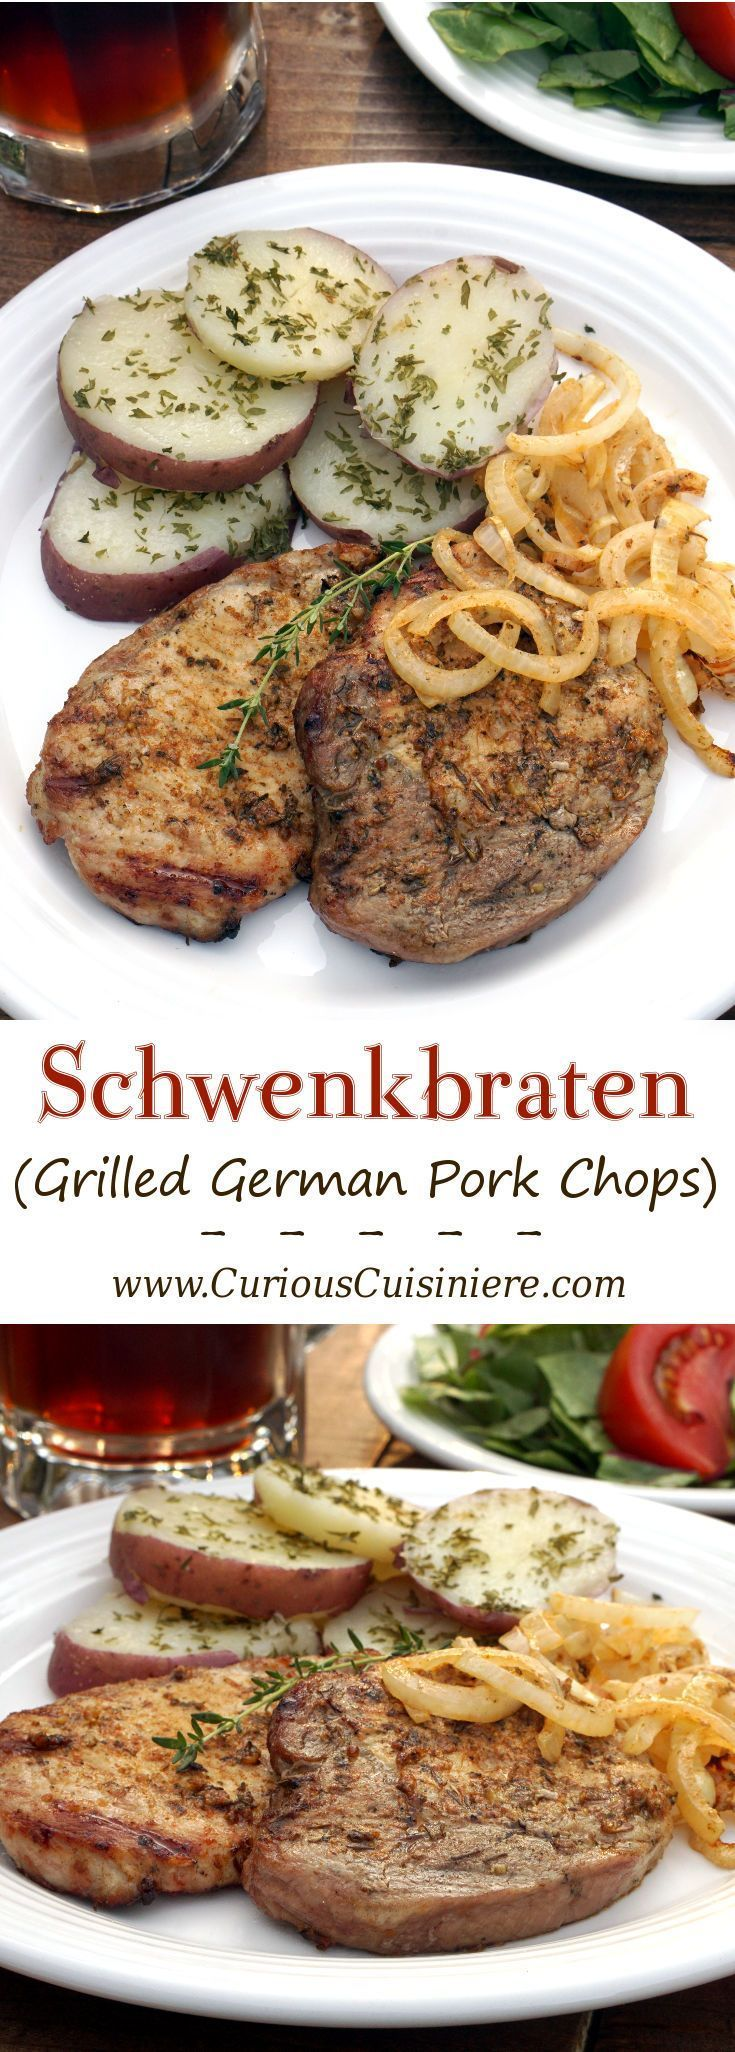 Juicy, smoky grilled German pork chops are cooked on a swinging grill called a schwenker ! | www.CuriousCuisiniere.com